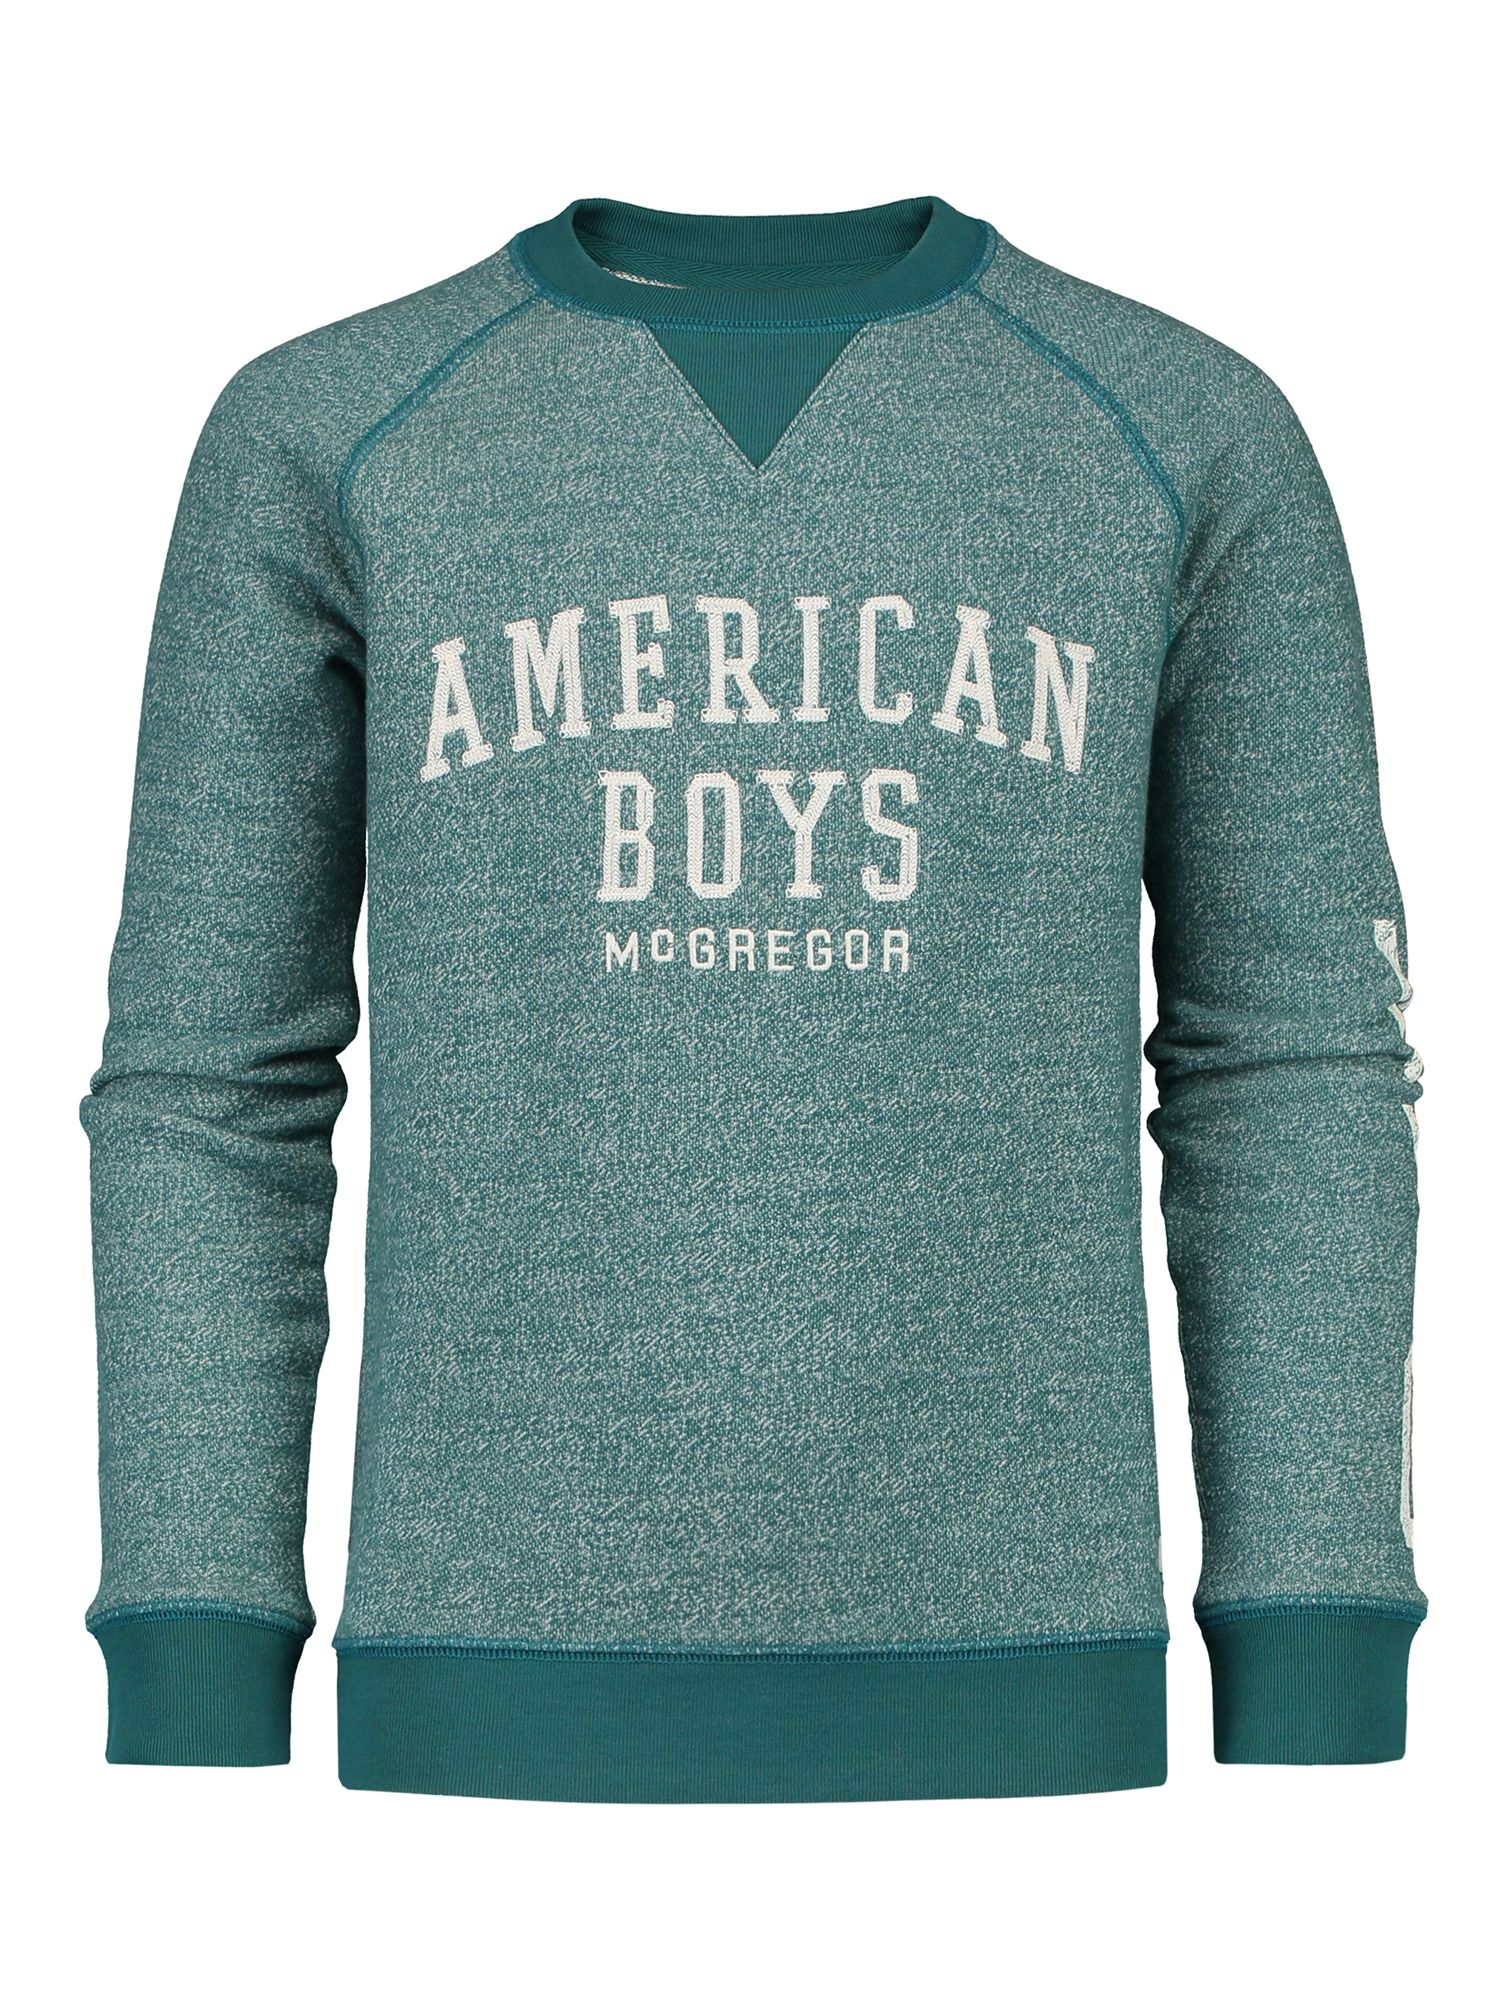 McGregor McGregor Boys Sweater Theo, Green